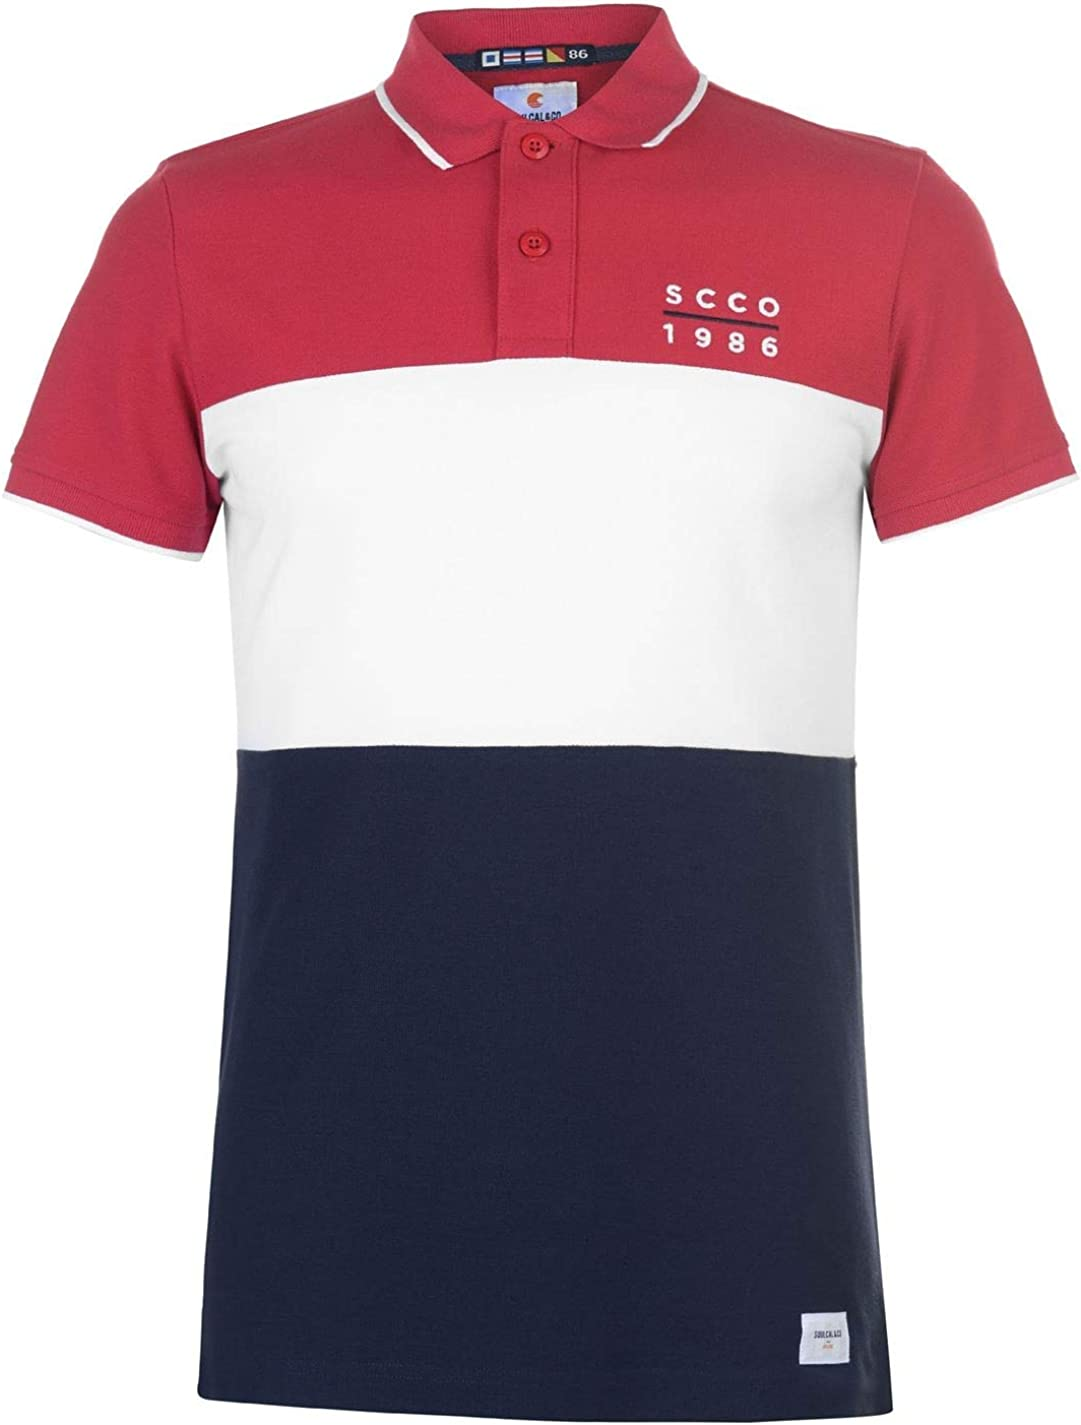 SoulCal Deluxe Cut and Sew Polo Shirt Mens Gents Slim Fit Tee Top Short Sleeve